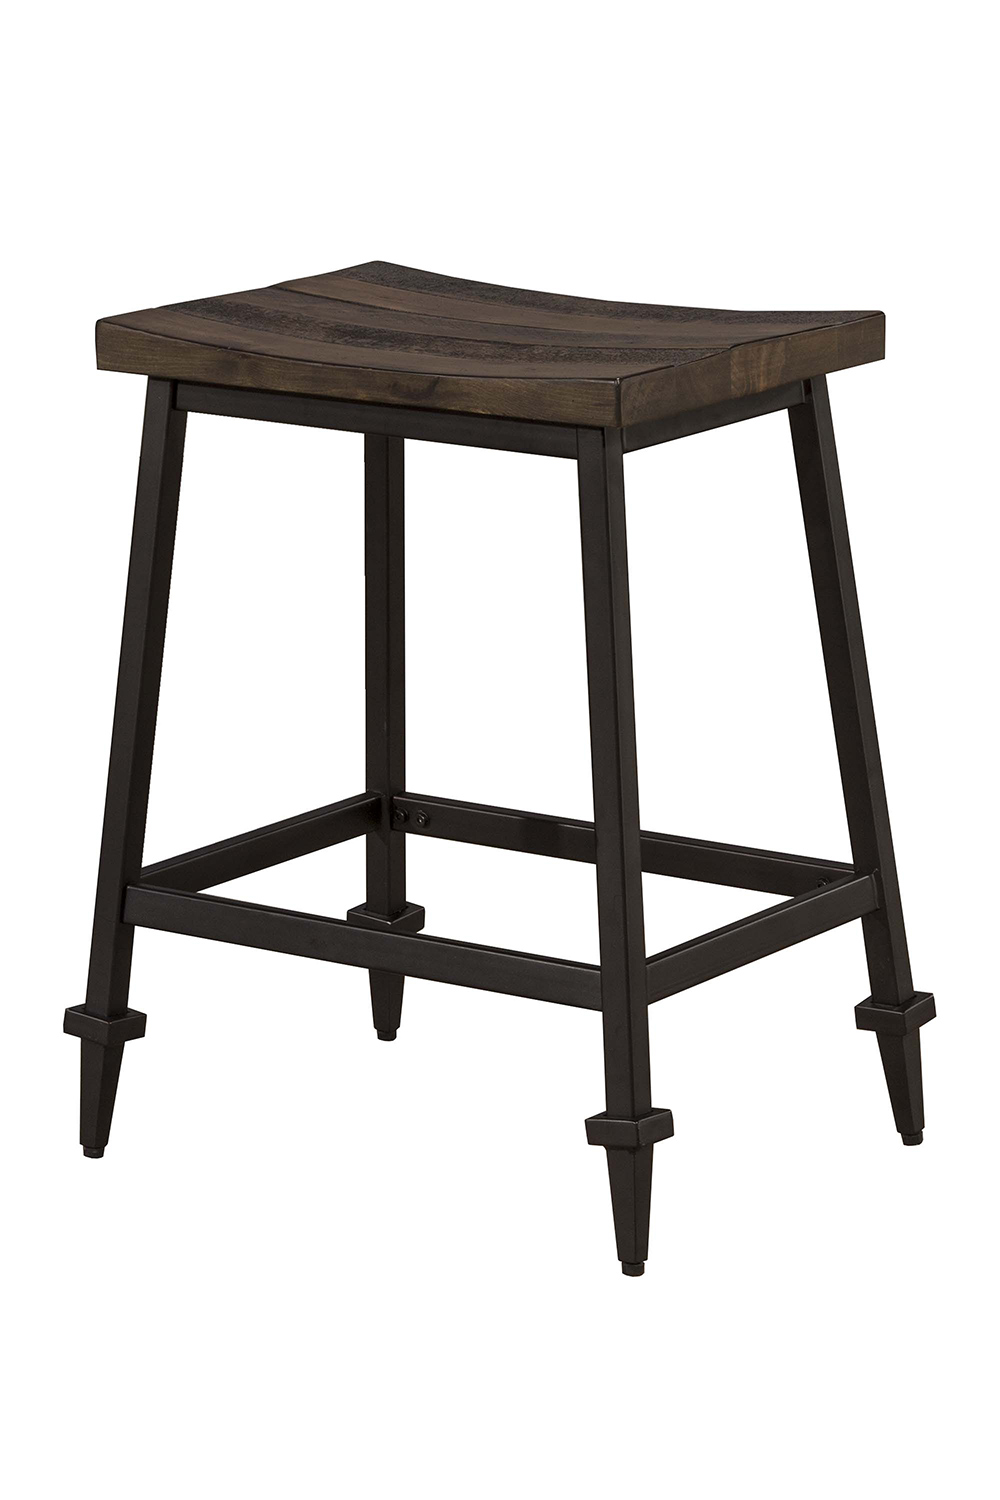 Hillsdale Trevino 3 Piece Counter Height Table Set